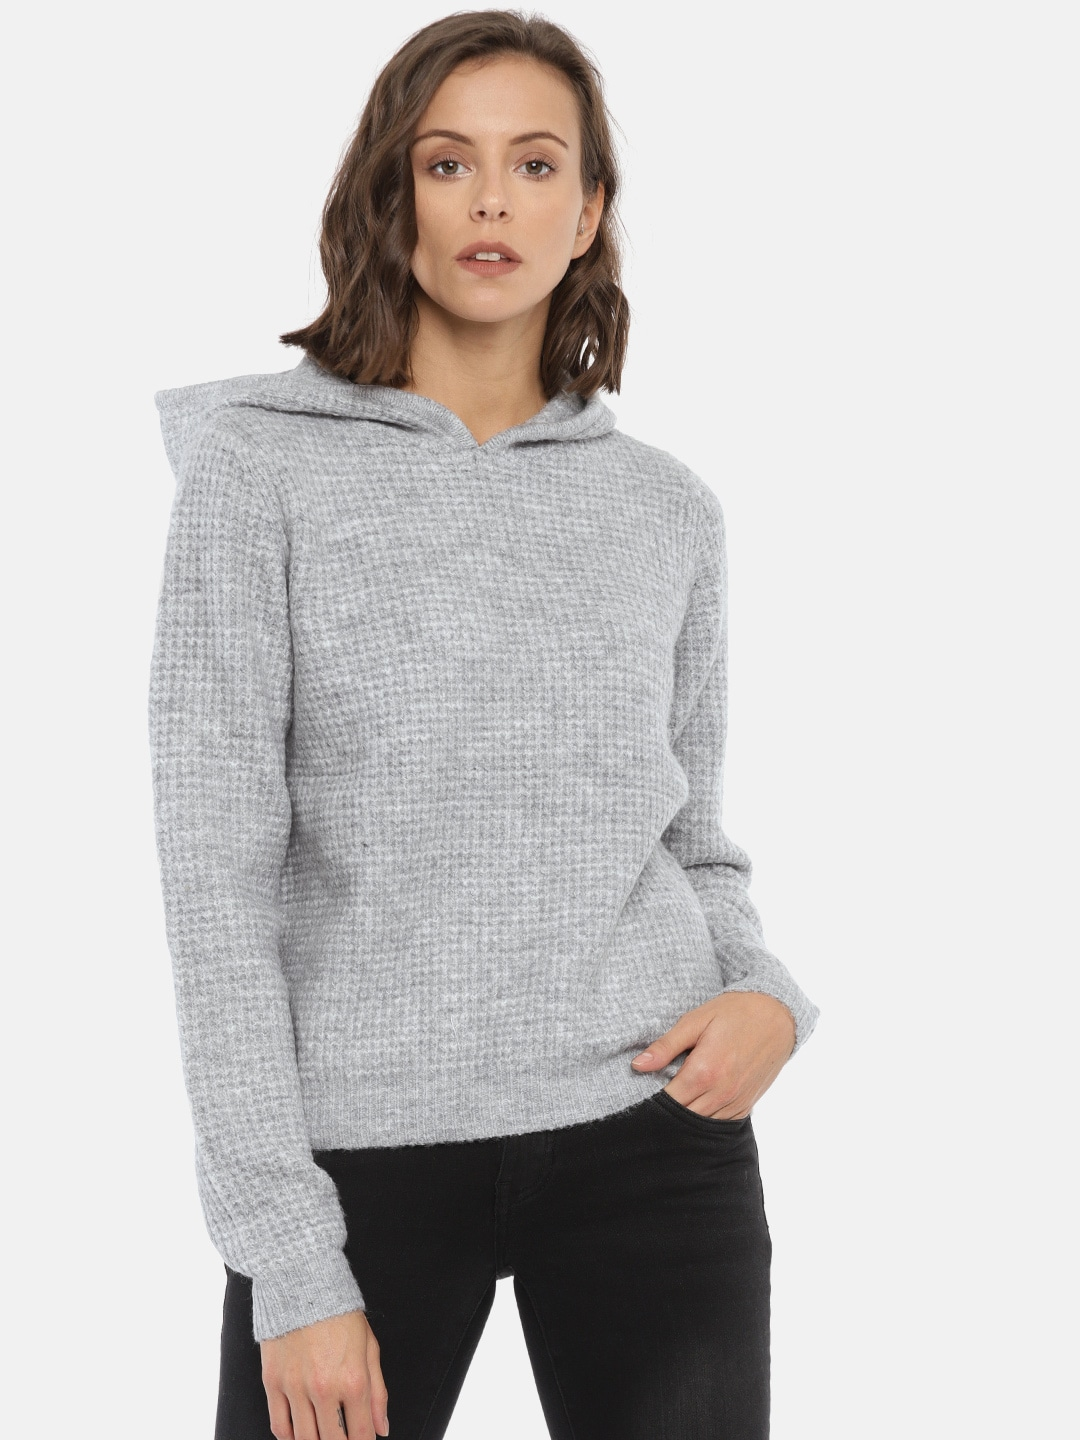 8503913a7 Forever 21 Sweaters - Buy Forever 21 Sweaters online in India